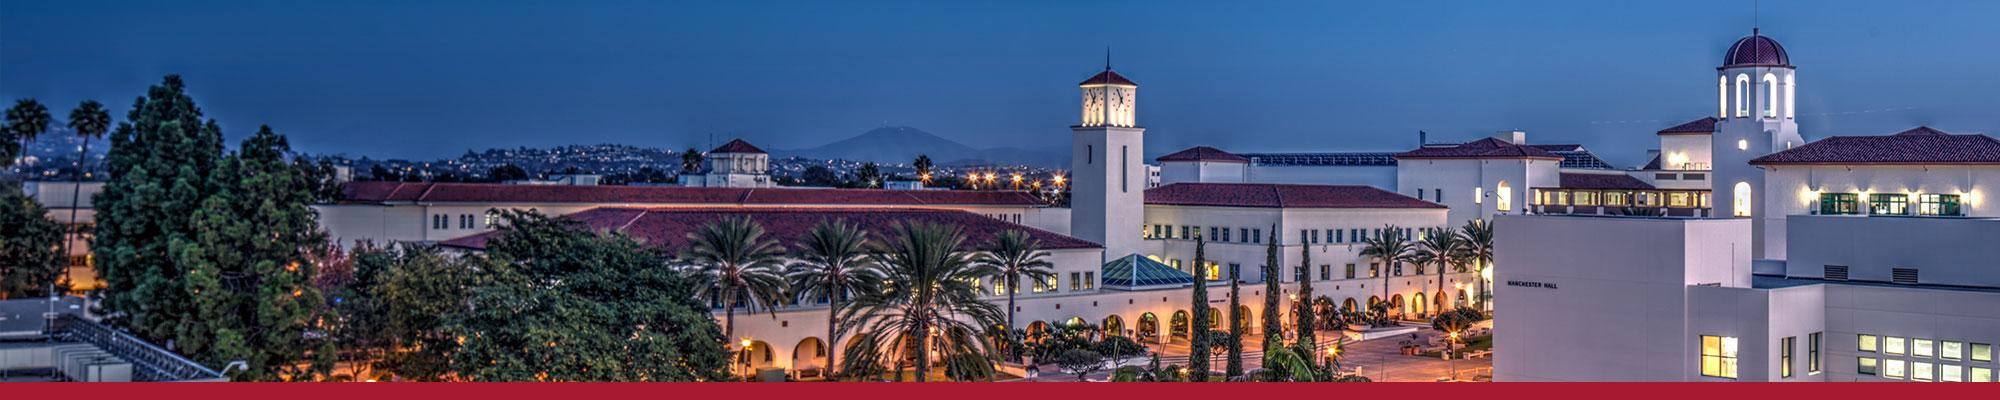 SDSU Campus at Night